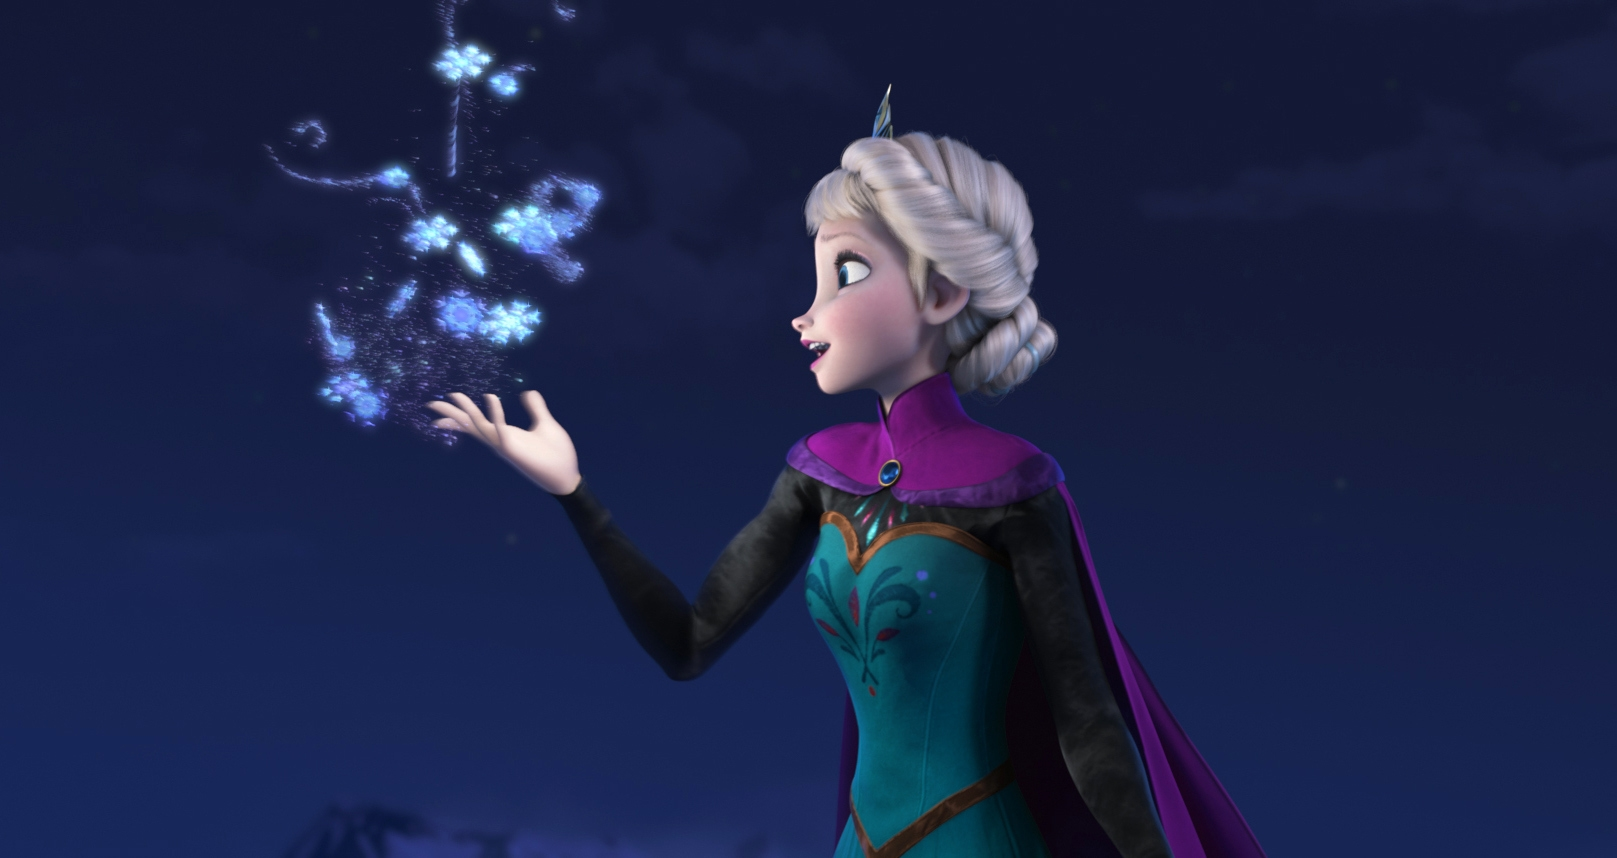 """The Disney animated feature """"Frozen,"""" with Elsa the Snow Queen, above, voiced by Idina Menzel, was back on top of the movie box office heap last week with $20.7 million in ticket sales, according to industry estimates."""